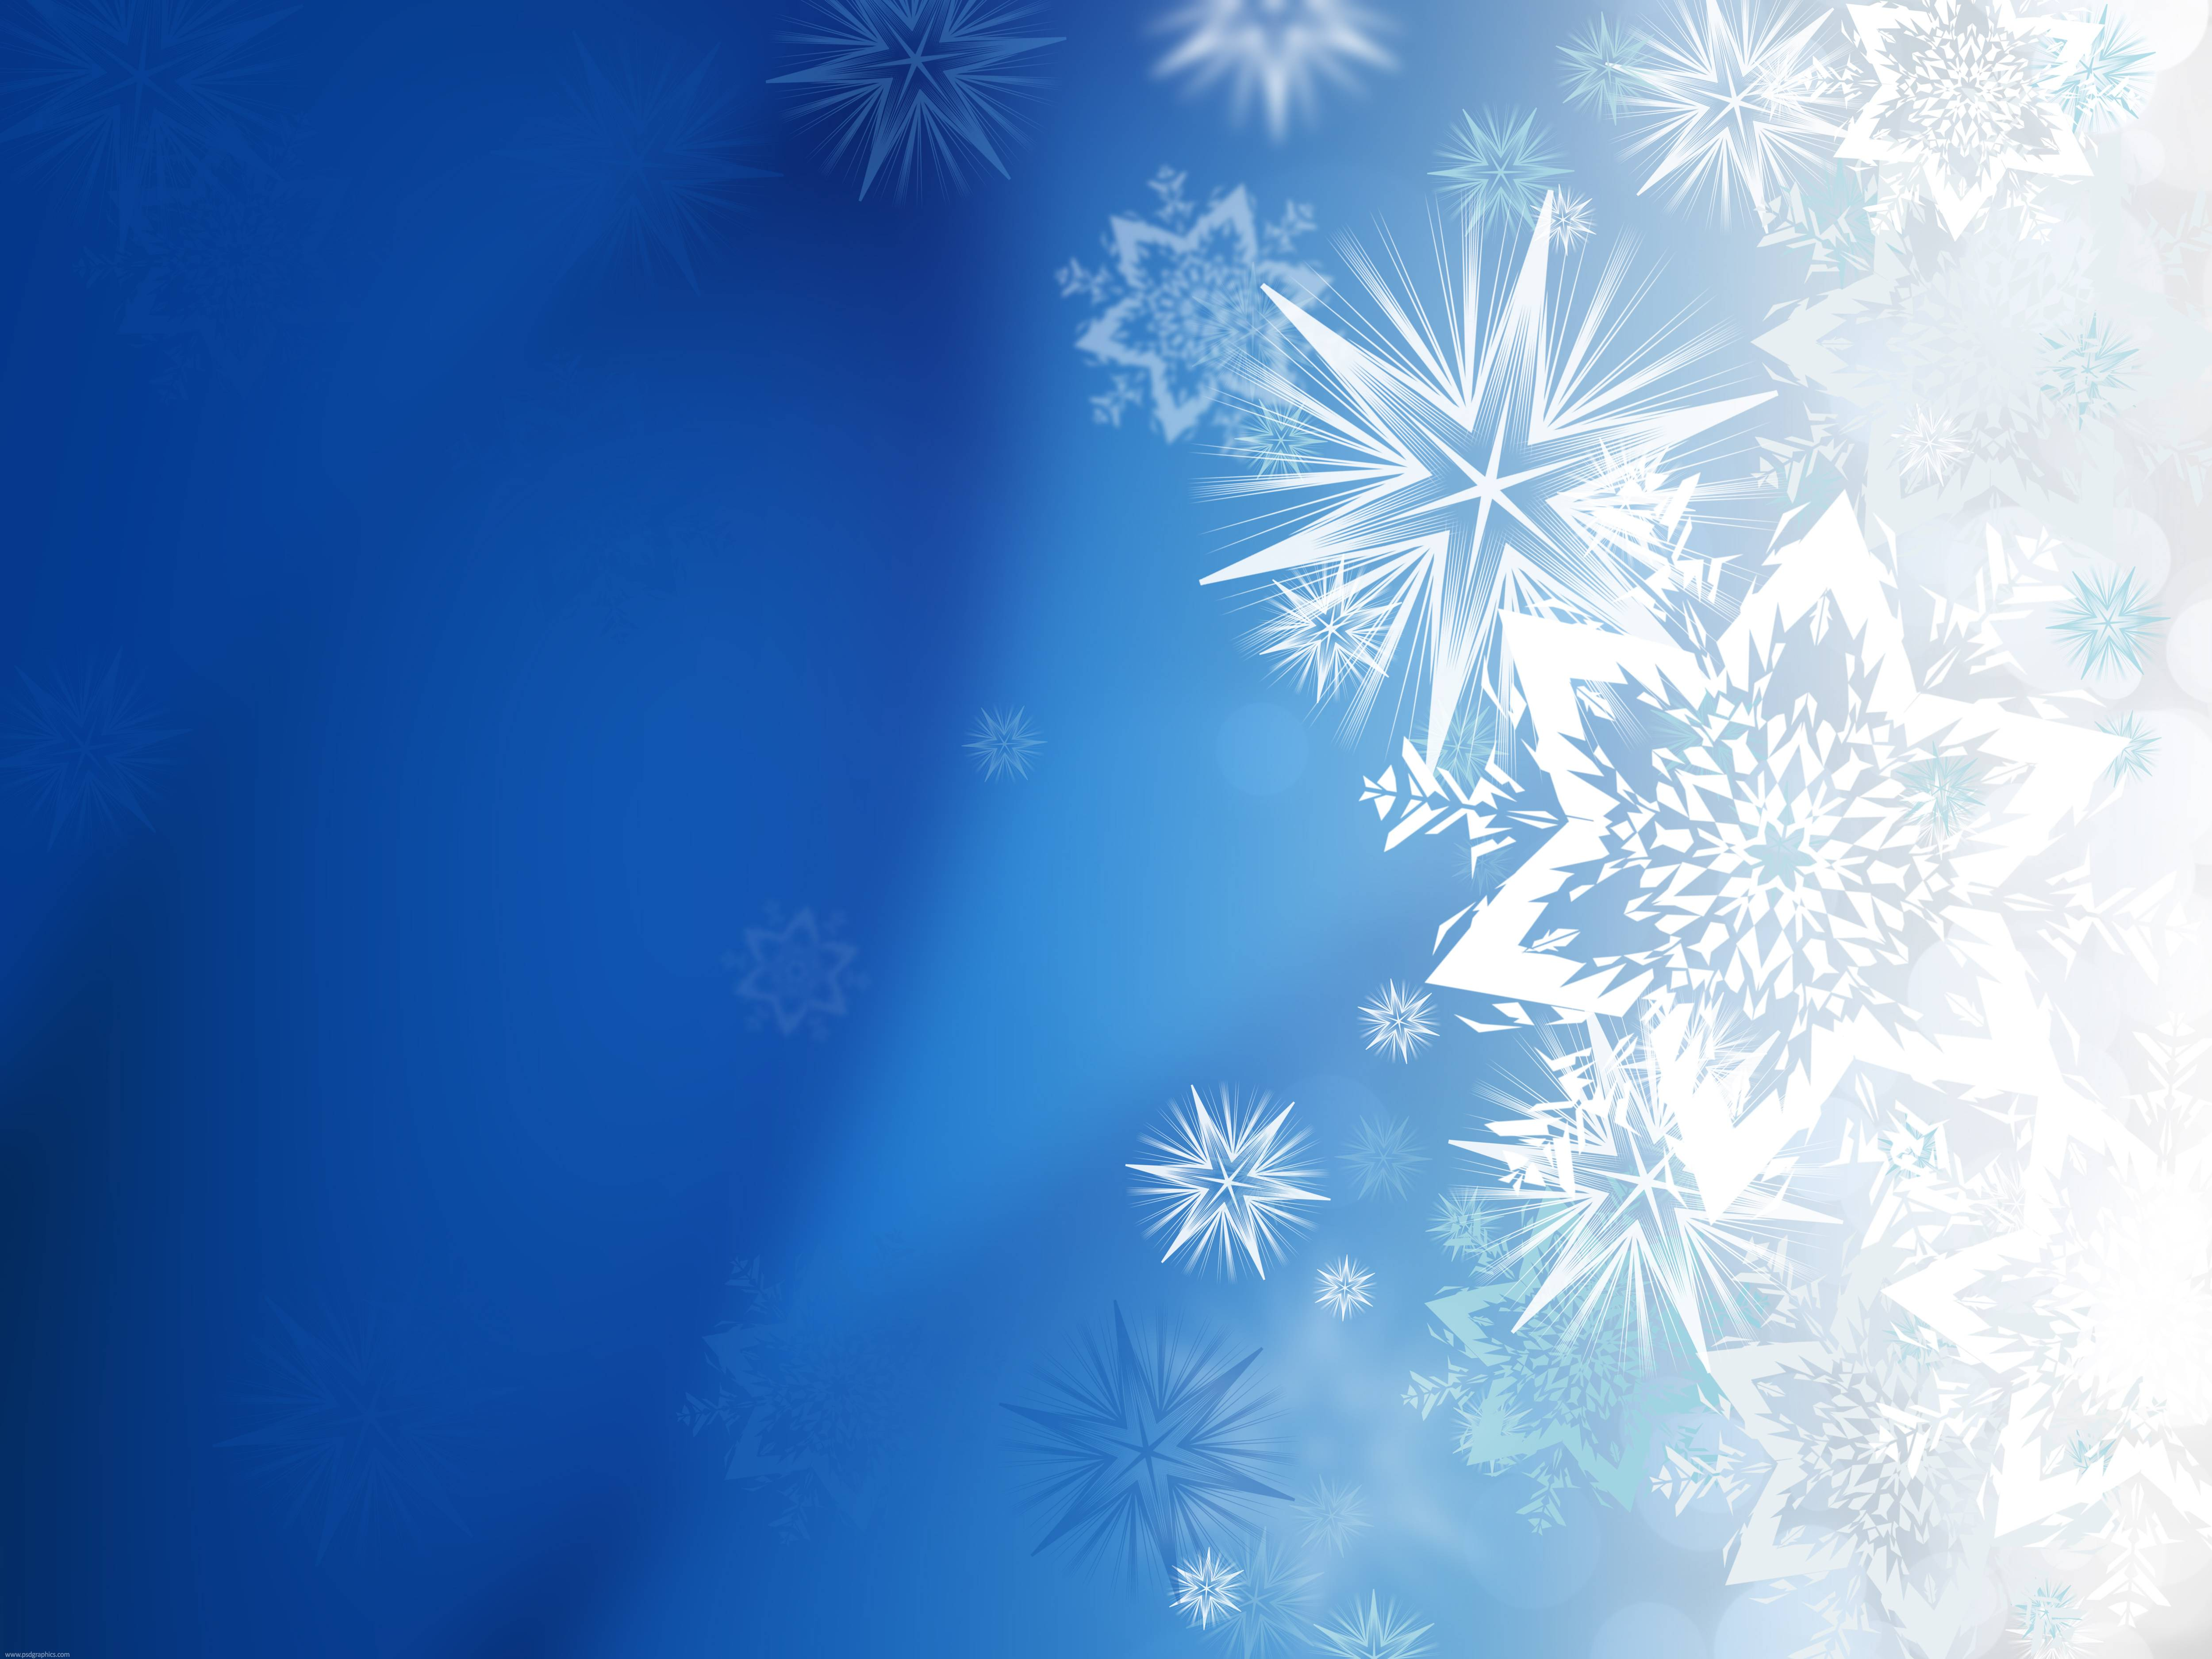 Winter Themed Powerpoint Template from www.slidebackground.com